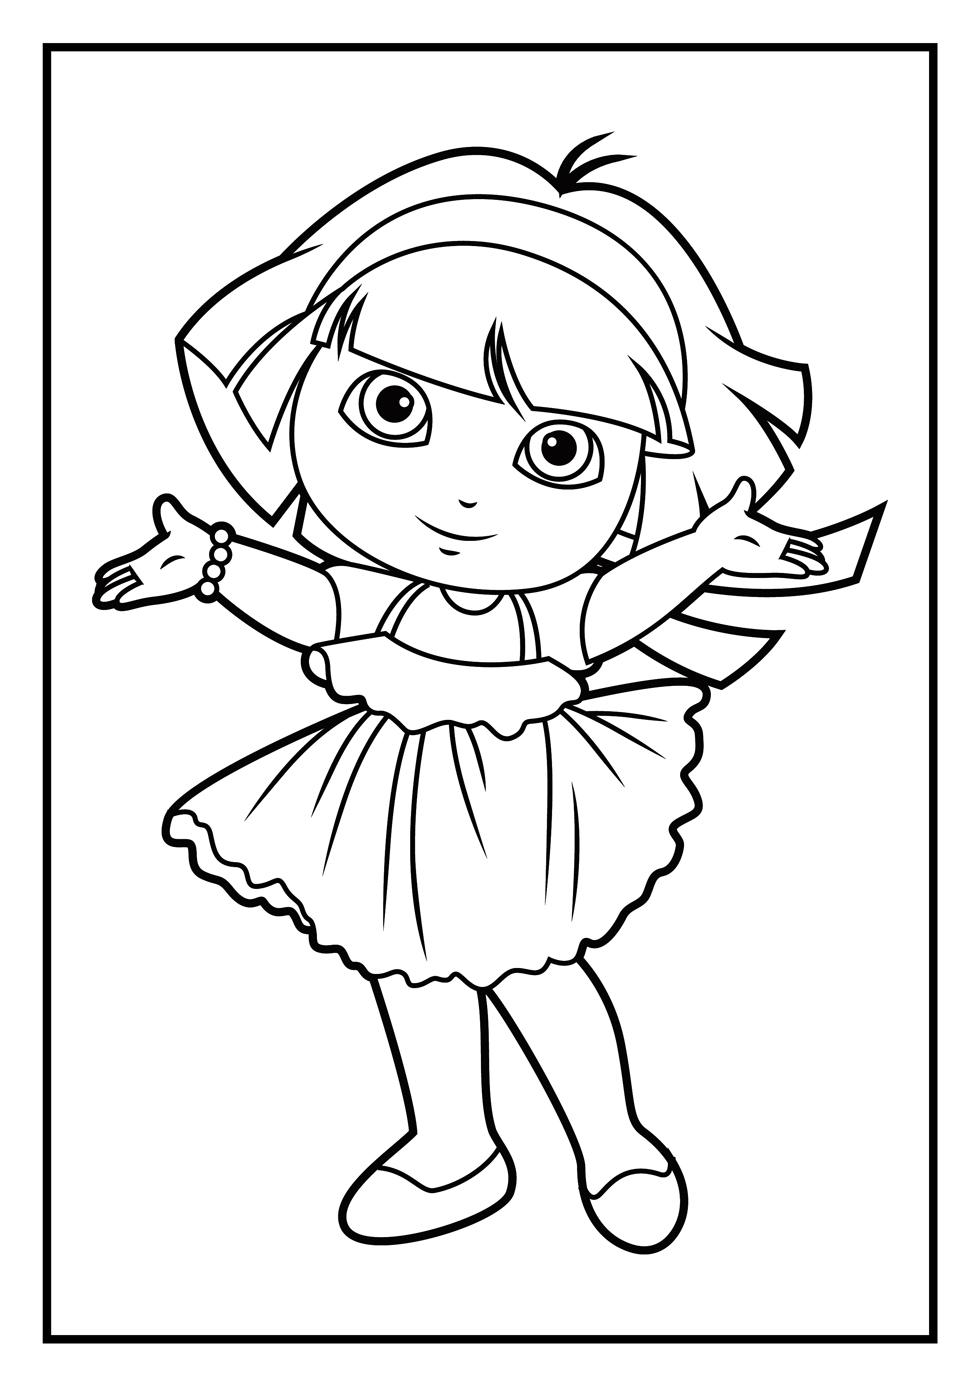 dora to color dora the explorer coloring pages learny kids color to dora